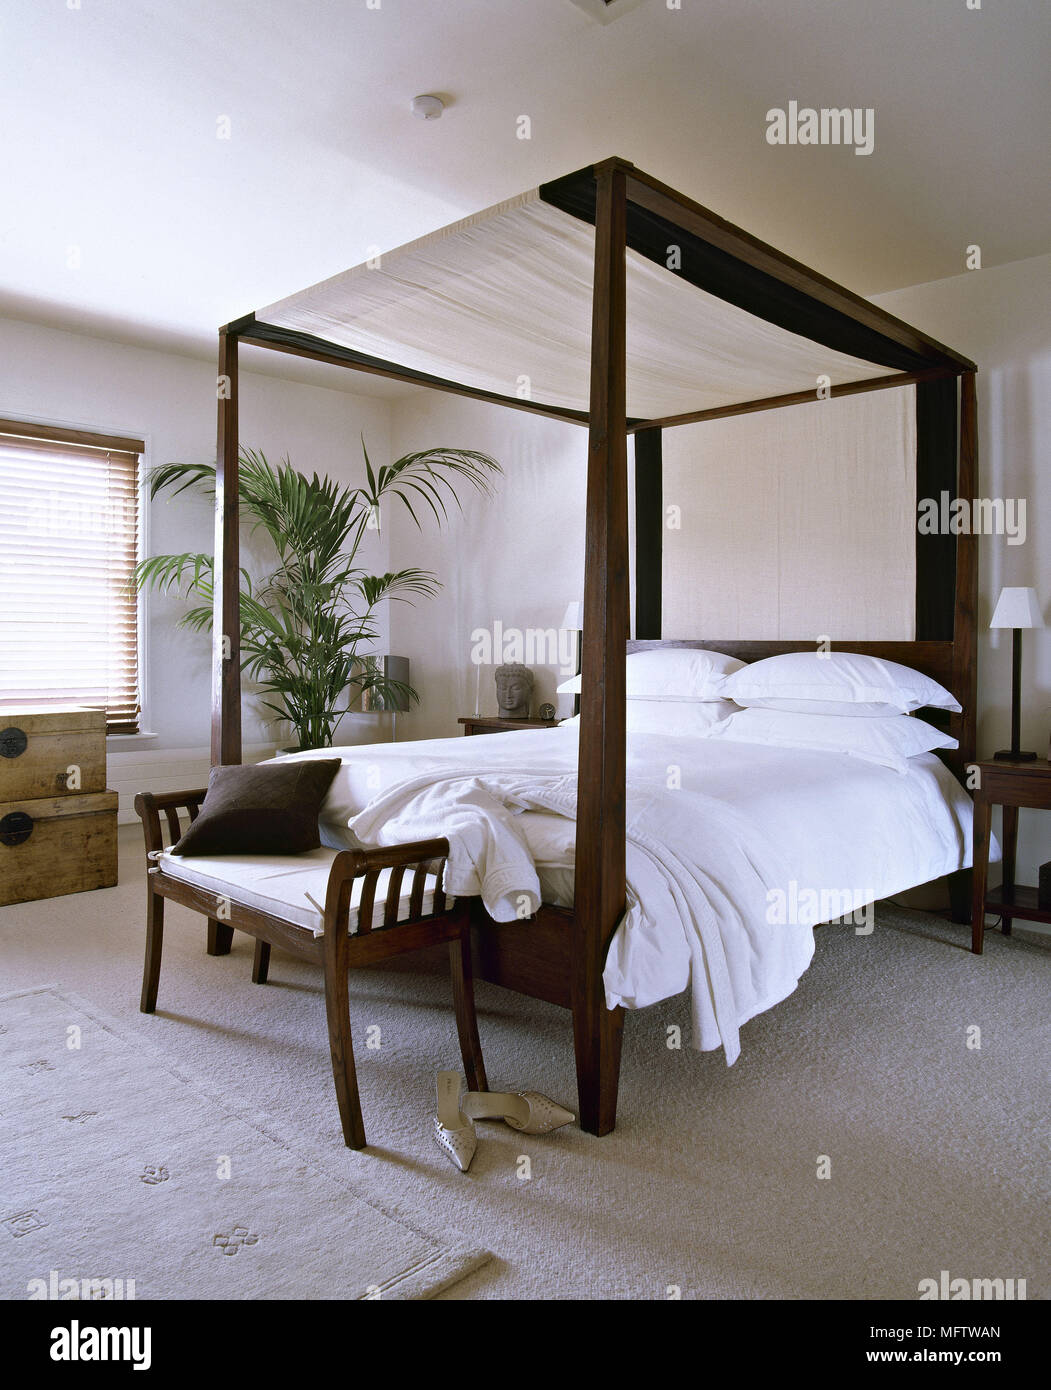 https www alamy com a modern bedroom with four poster bed white bed linen canopies carpet image181870269 html